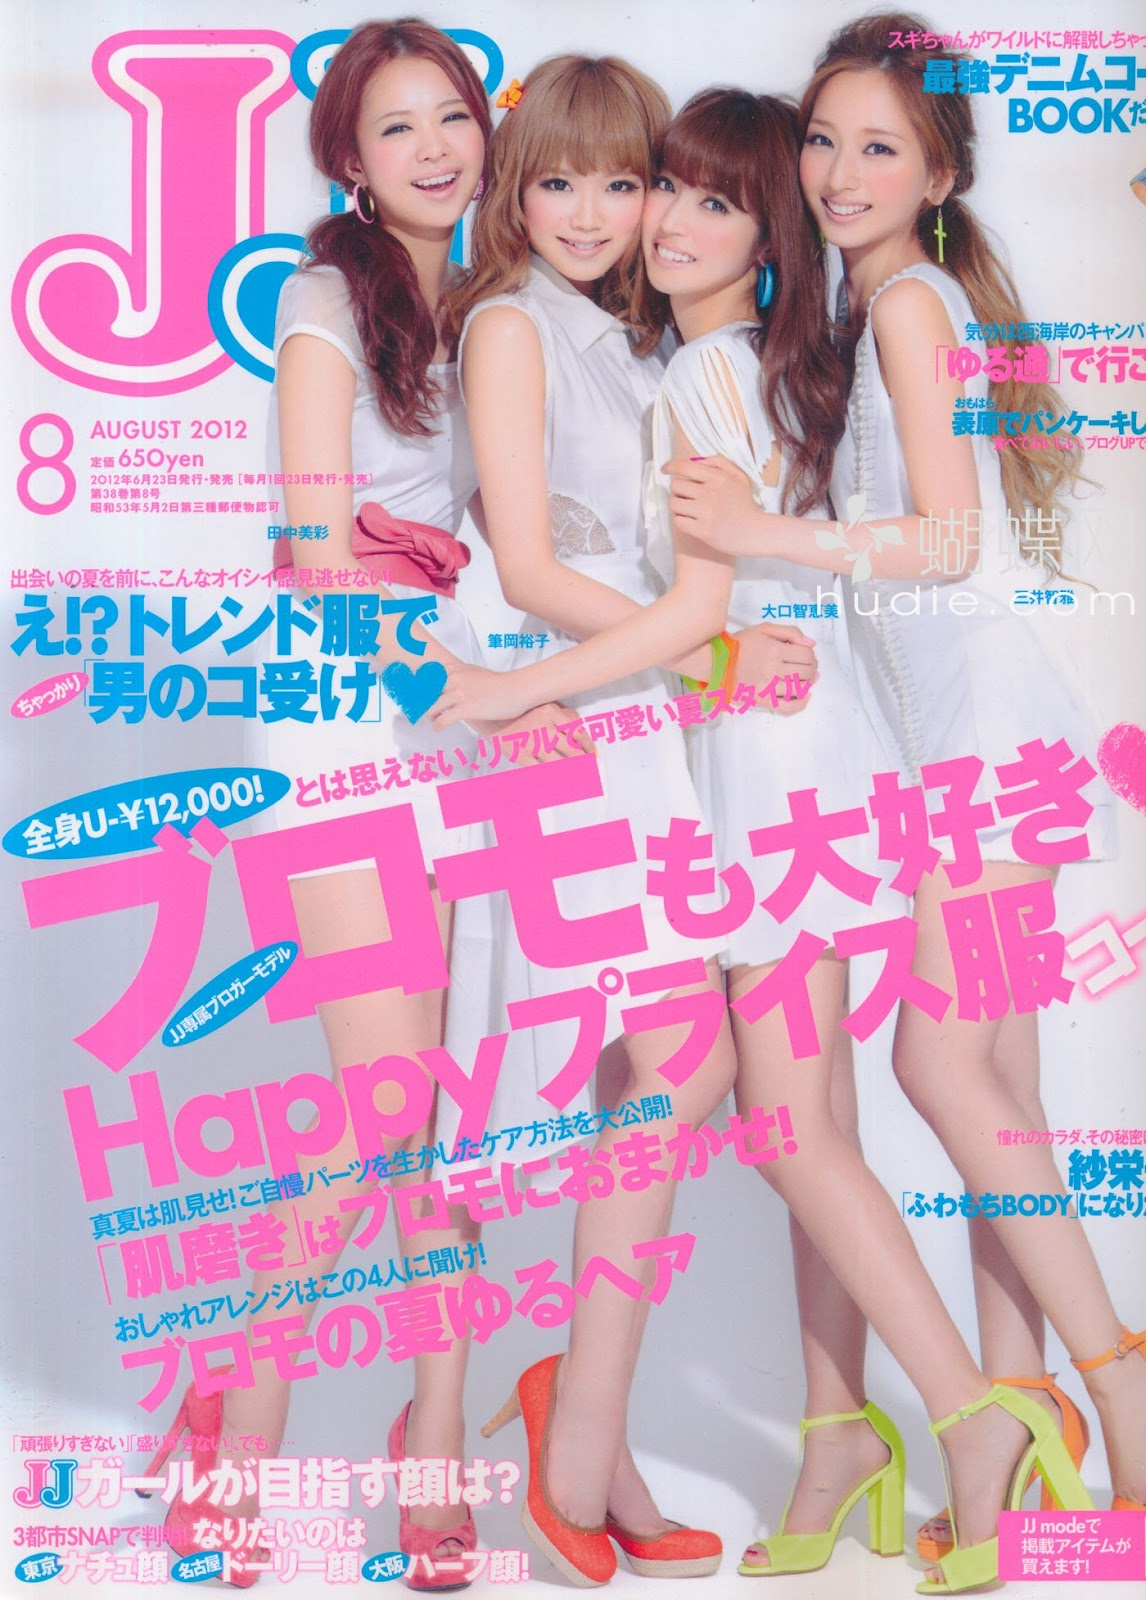 jj magazine scans august 2012